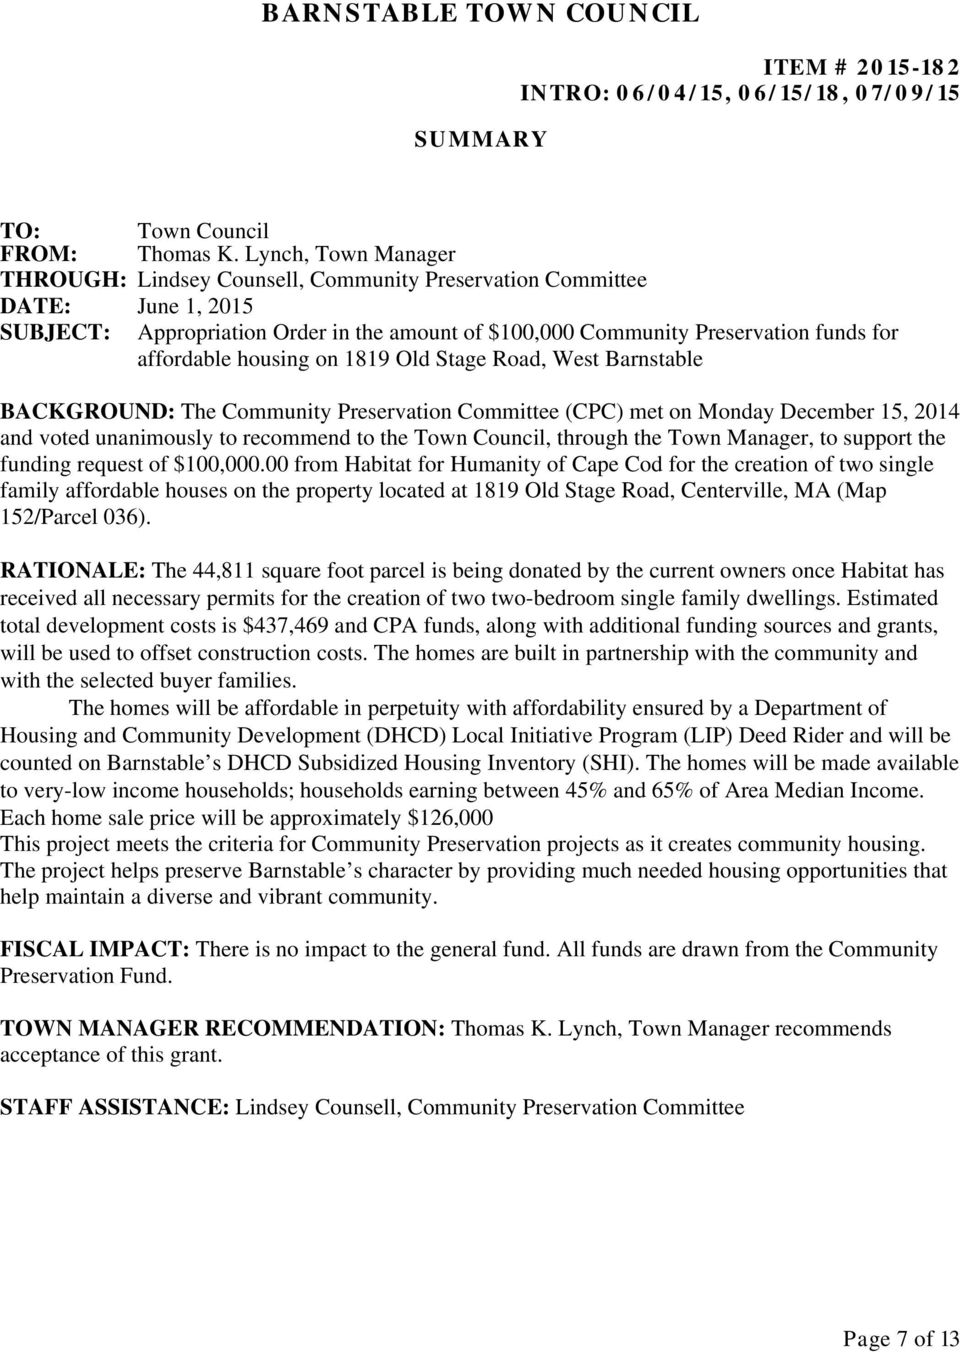 housing on 1819 Old Stage Road, West Barnstable BACKGROUND: The Community Preservation Committee (CPC) met on Monday December 15, 2014 and voted unanimously to recommend to the Town Council, through